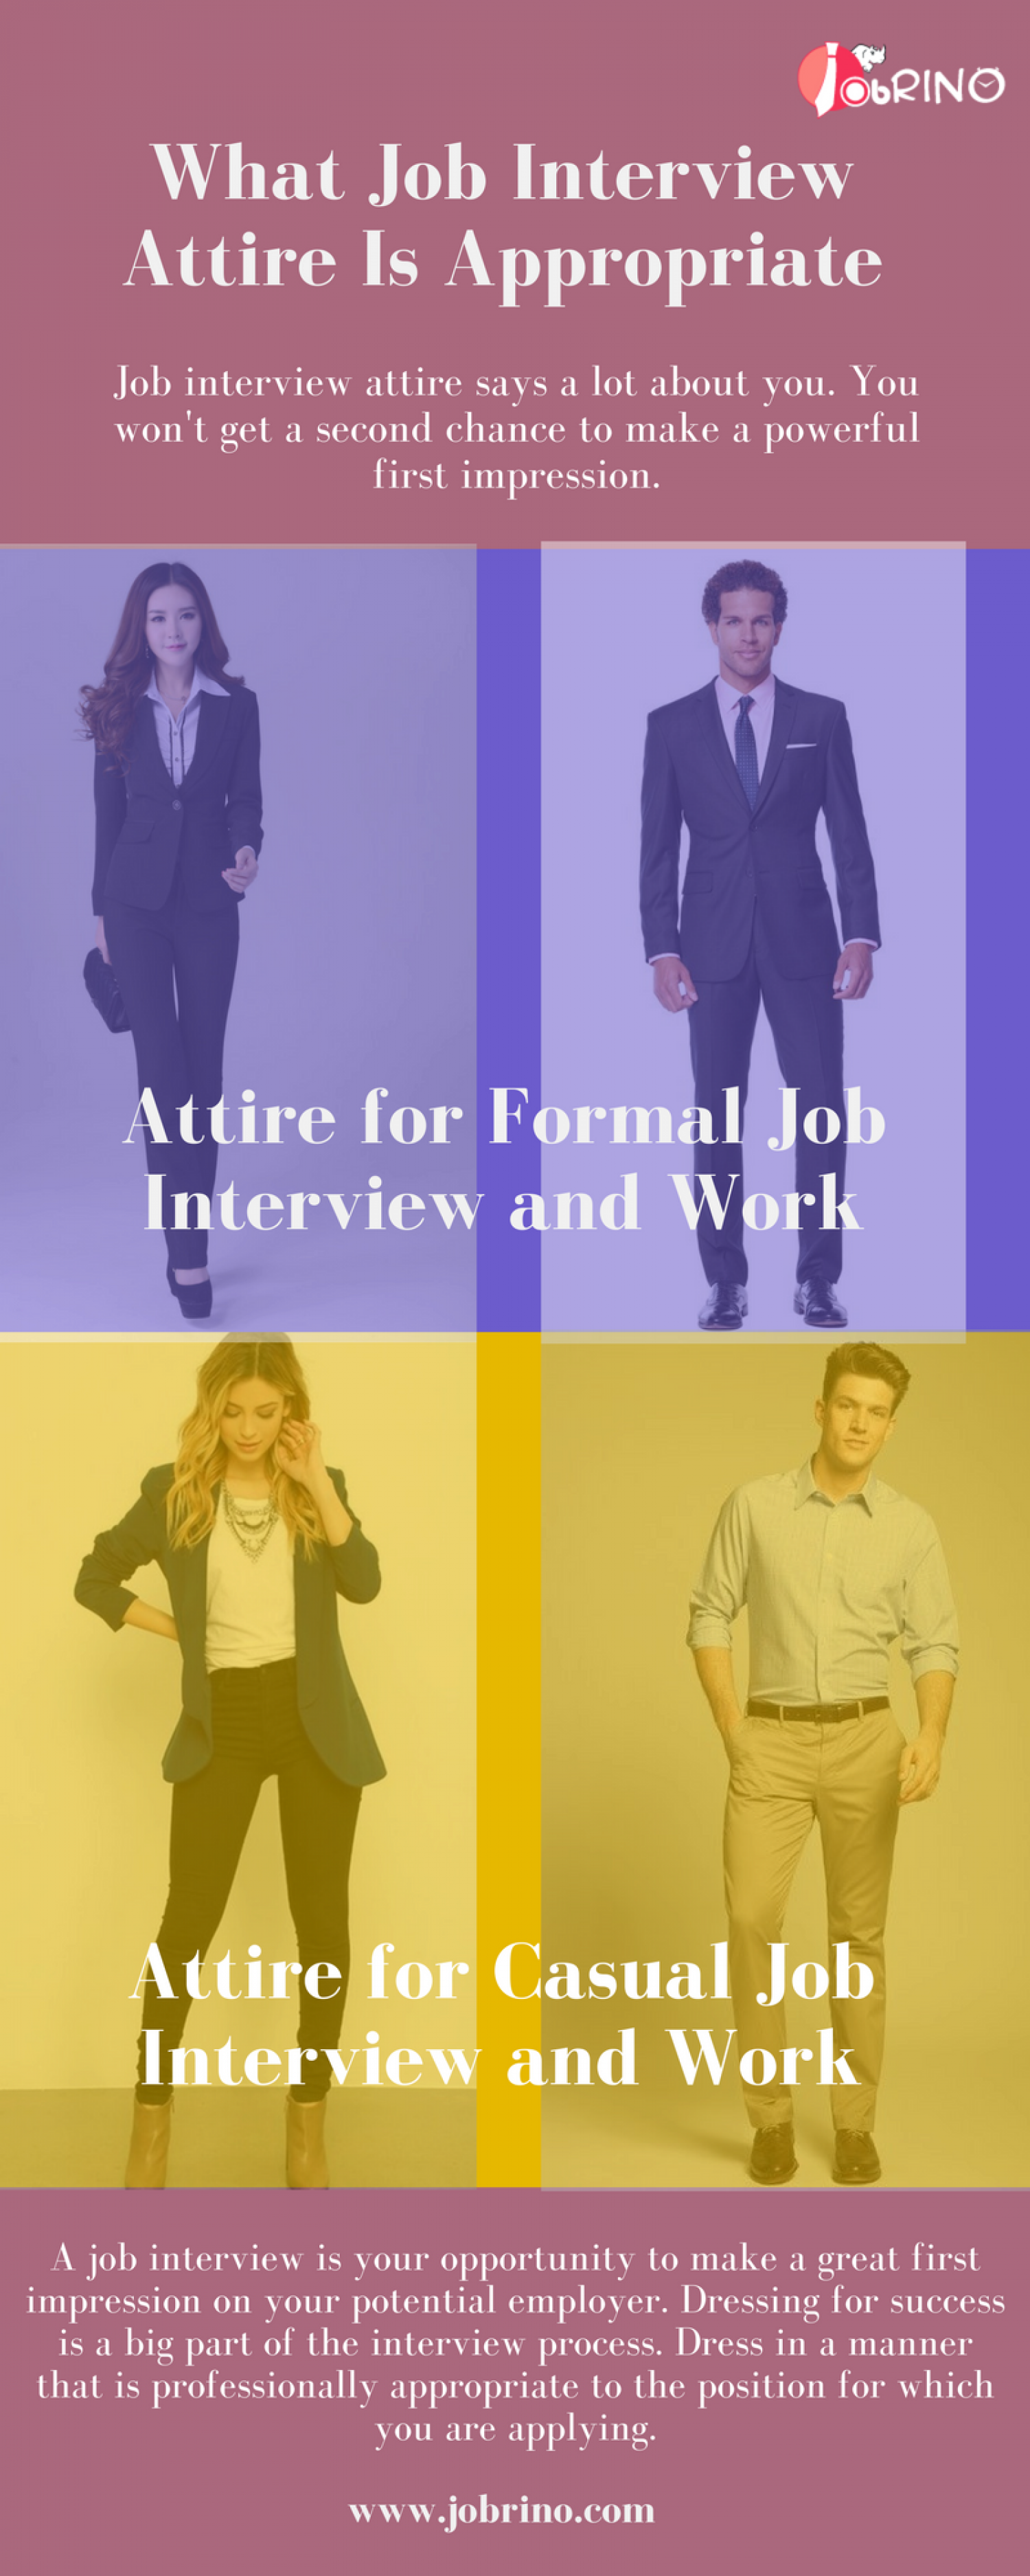 Find the job interview attire that is appropriate and explore best place to search for jobs - JobRino Infographic